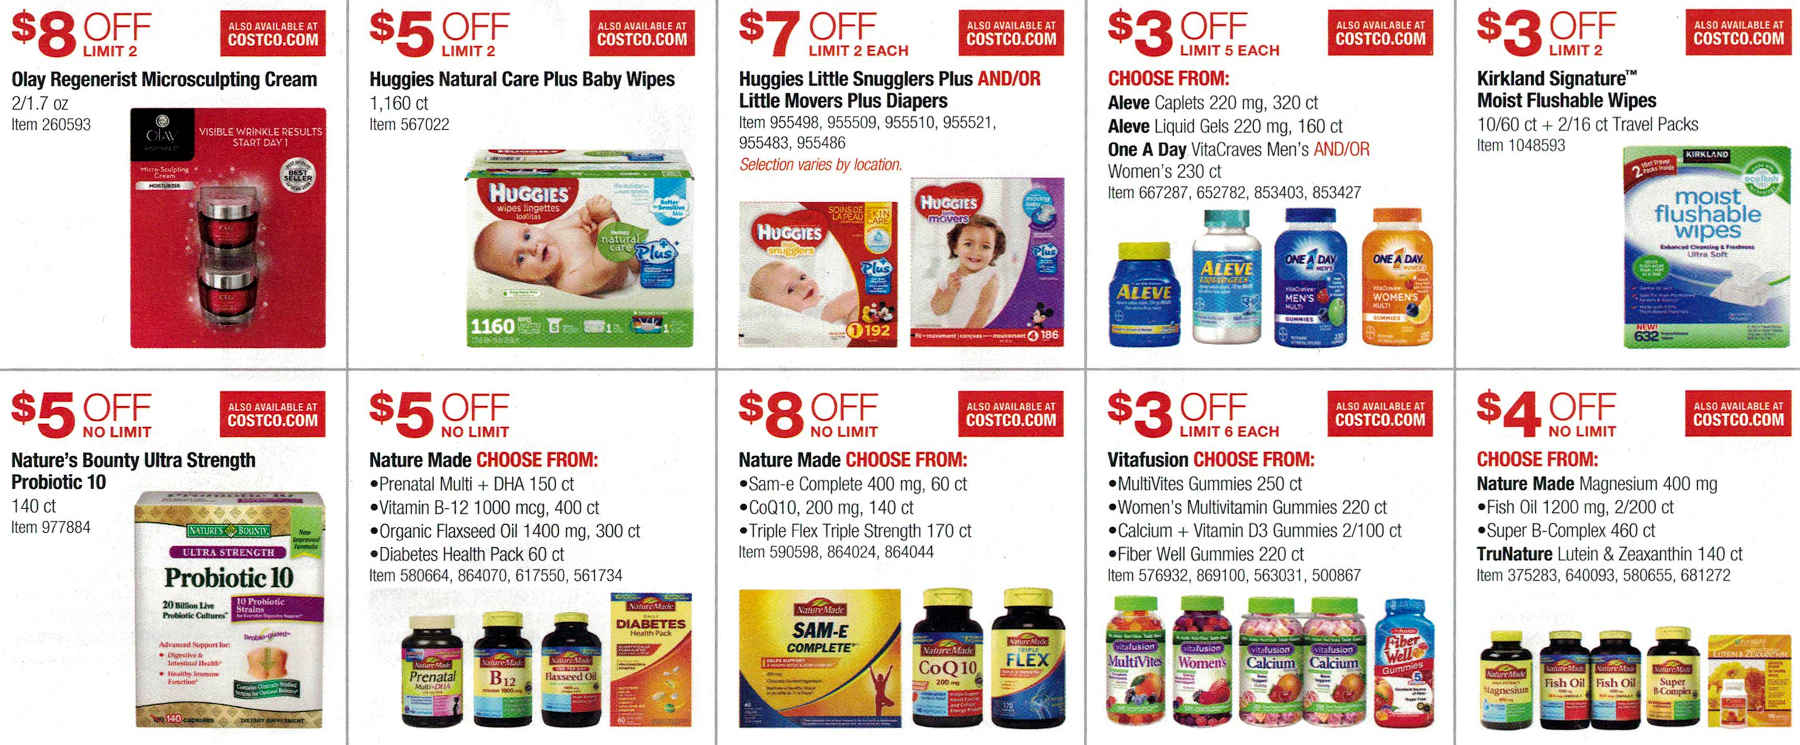 Costco membership coupon code